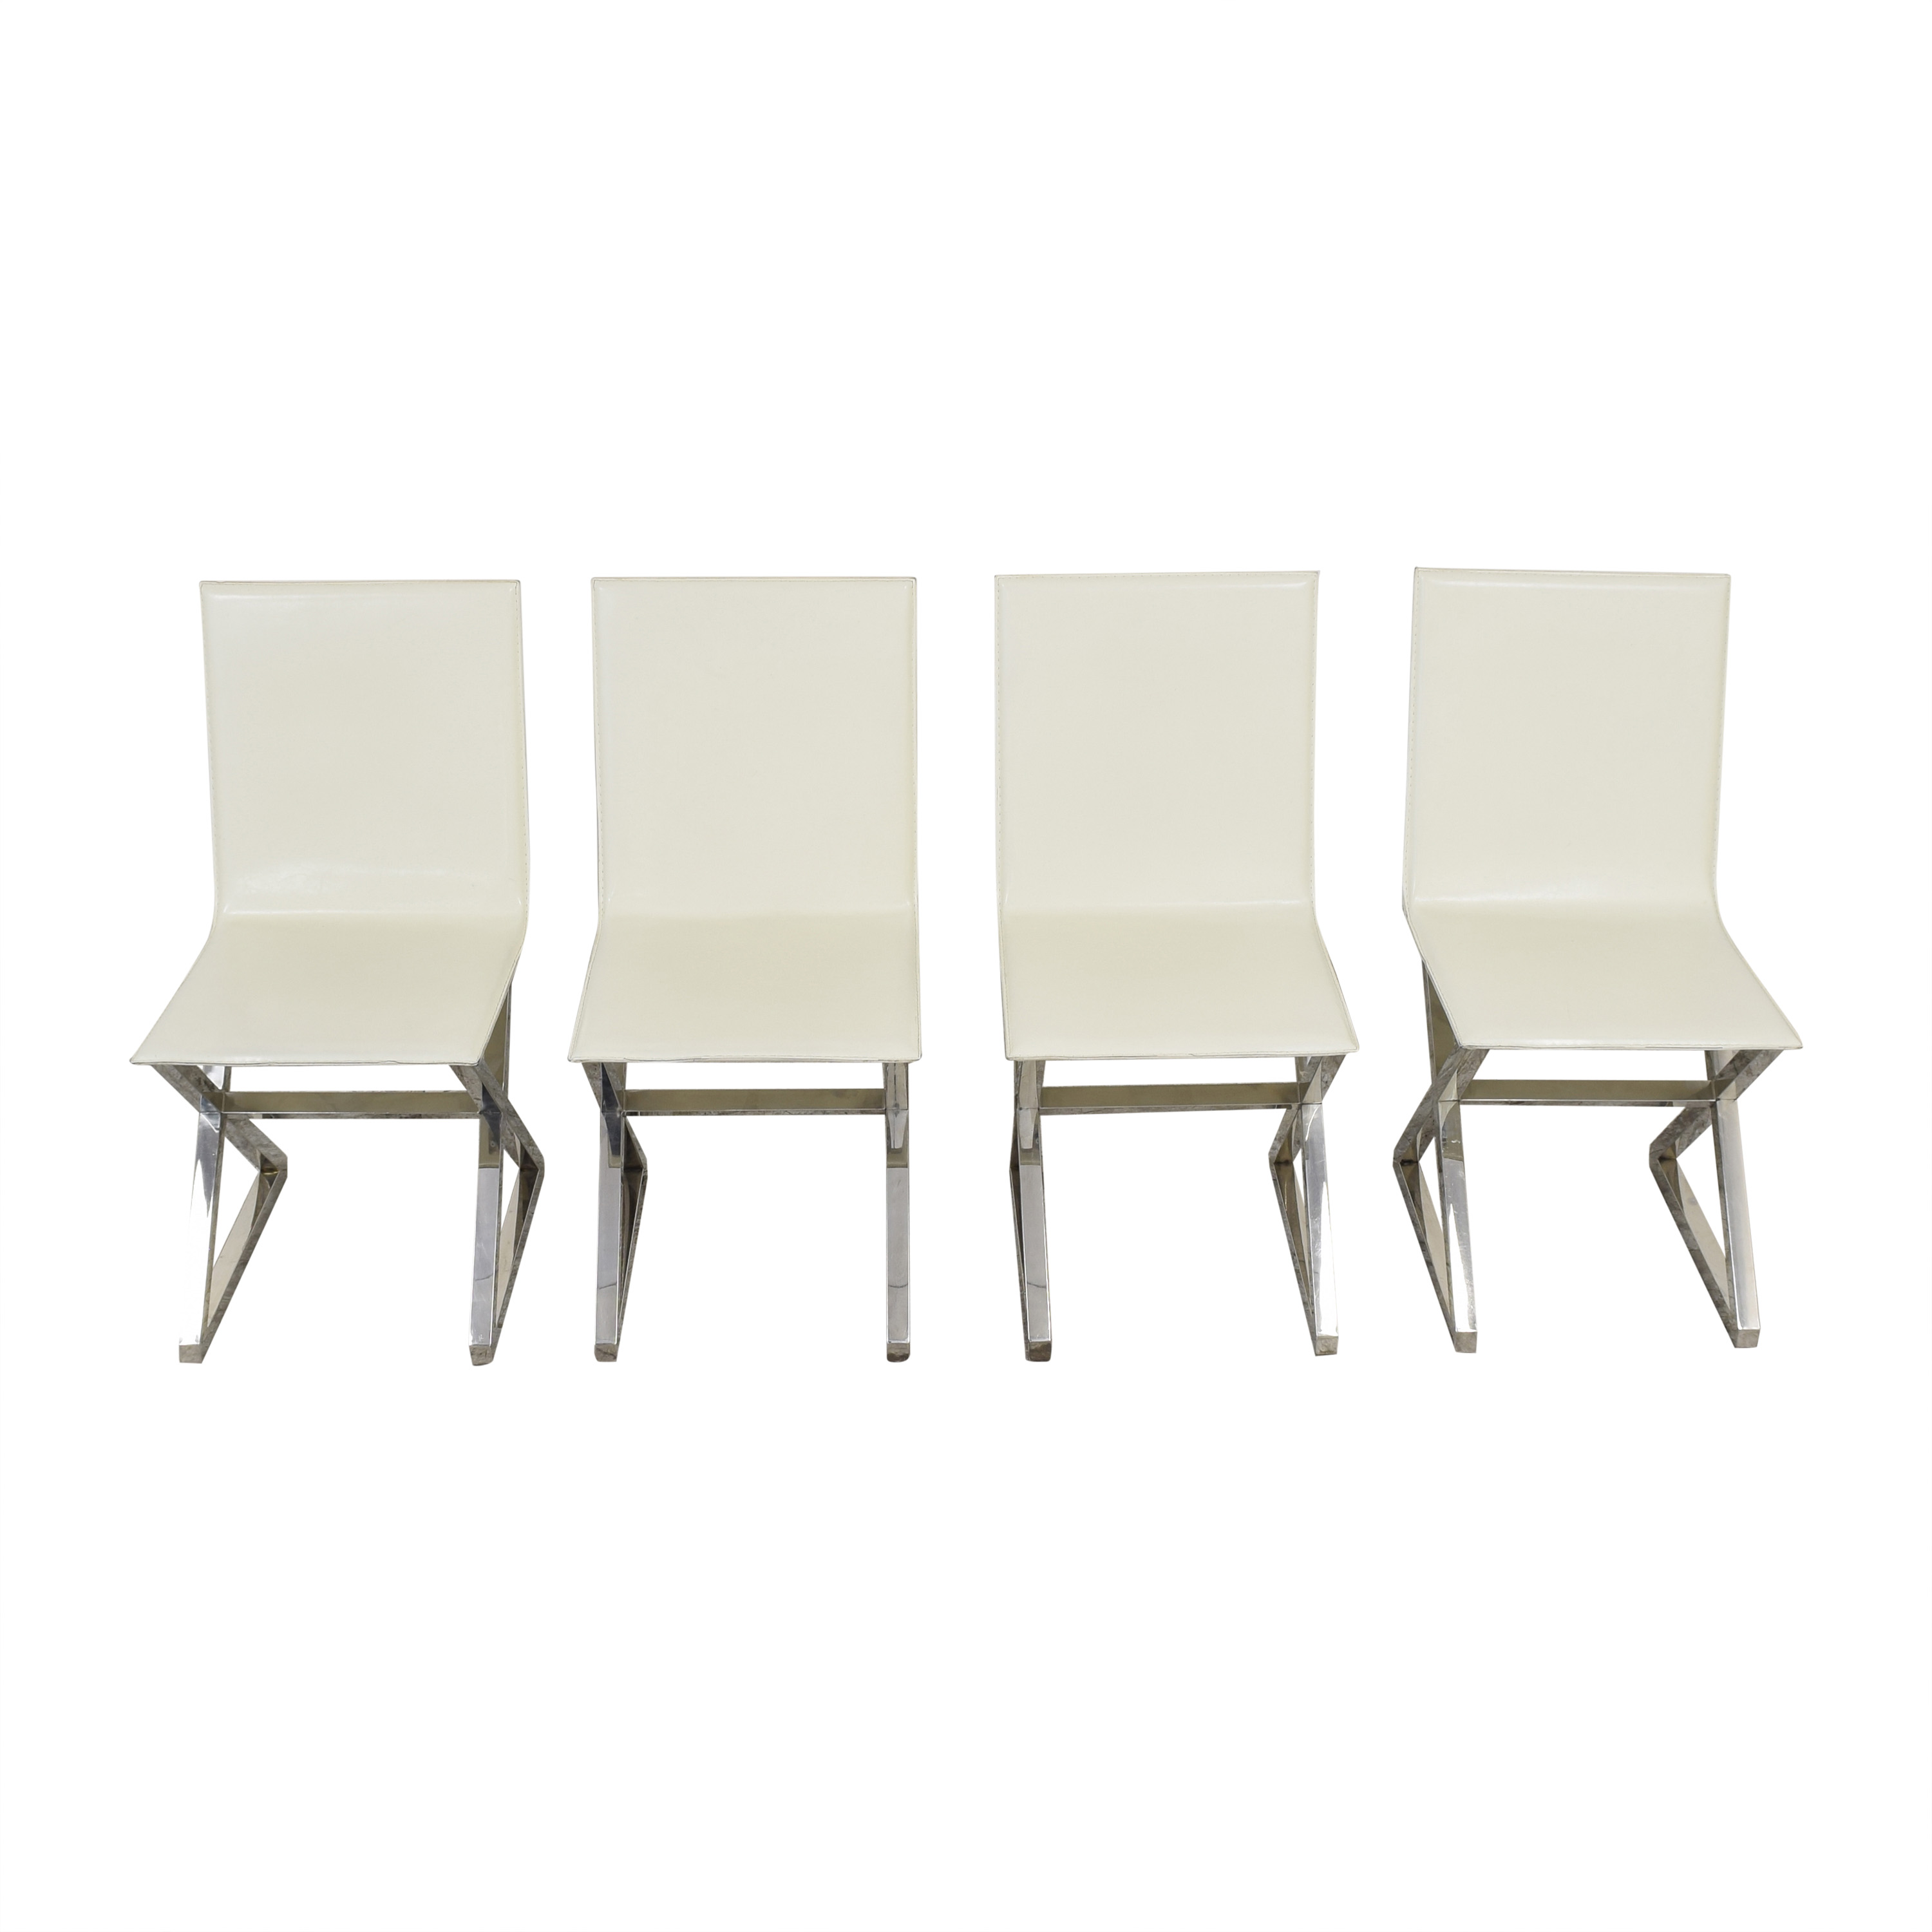 Z Gallerie Z Gallerie Axis Dining Chairs second hand